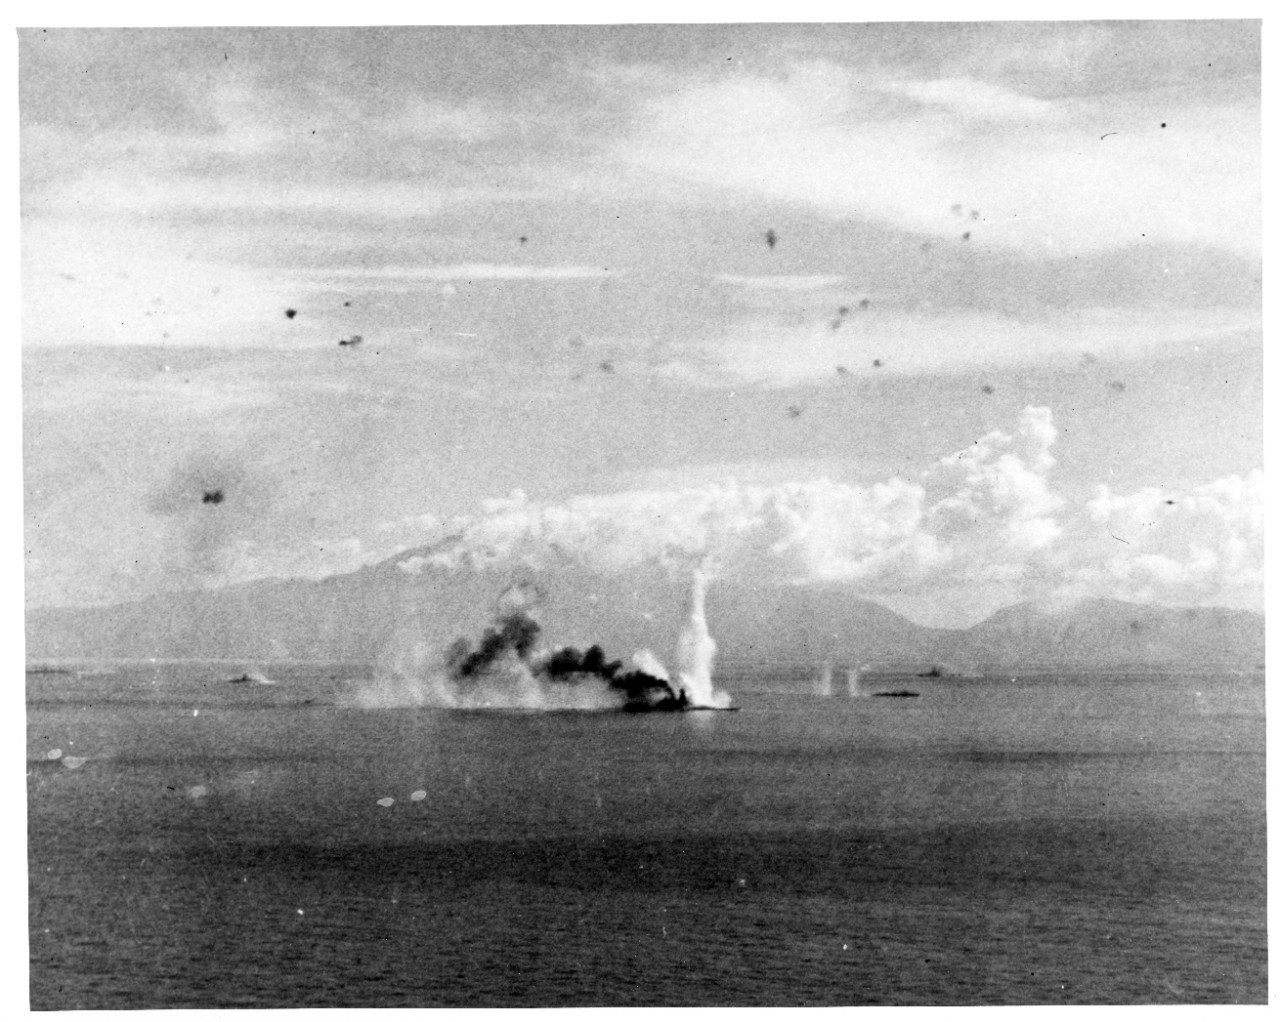 Photo #: 80-G-281766  Battle of the Sibuyan Sea, 24 October 1944